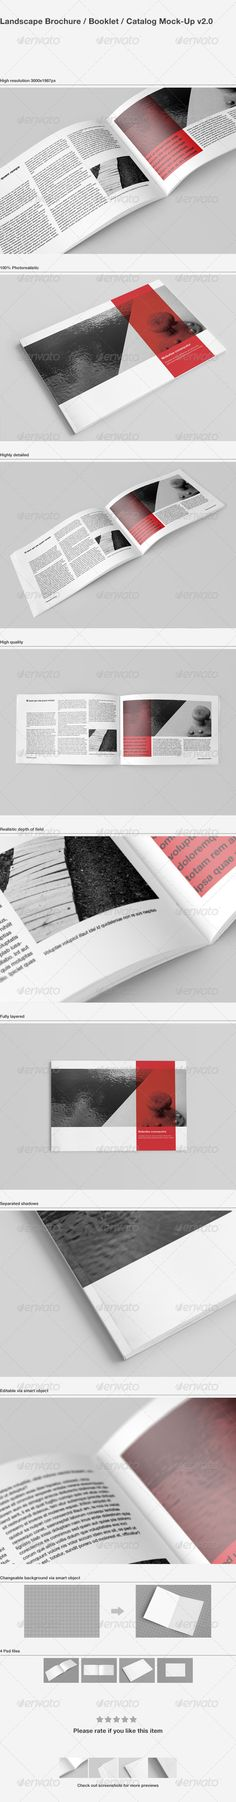 Brochure / Catalog MockUp — Photoshop PSD #landscape #realistic • Available here → https://graphicriver.net/item/brochure-catalog-mockup/1583241?ref=pxcr